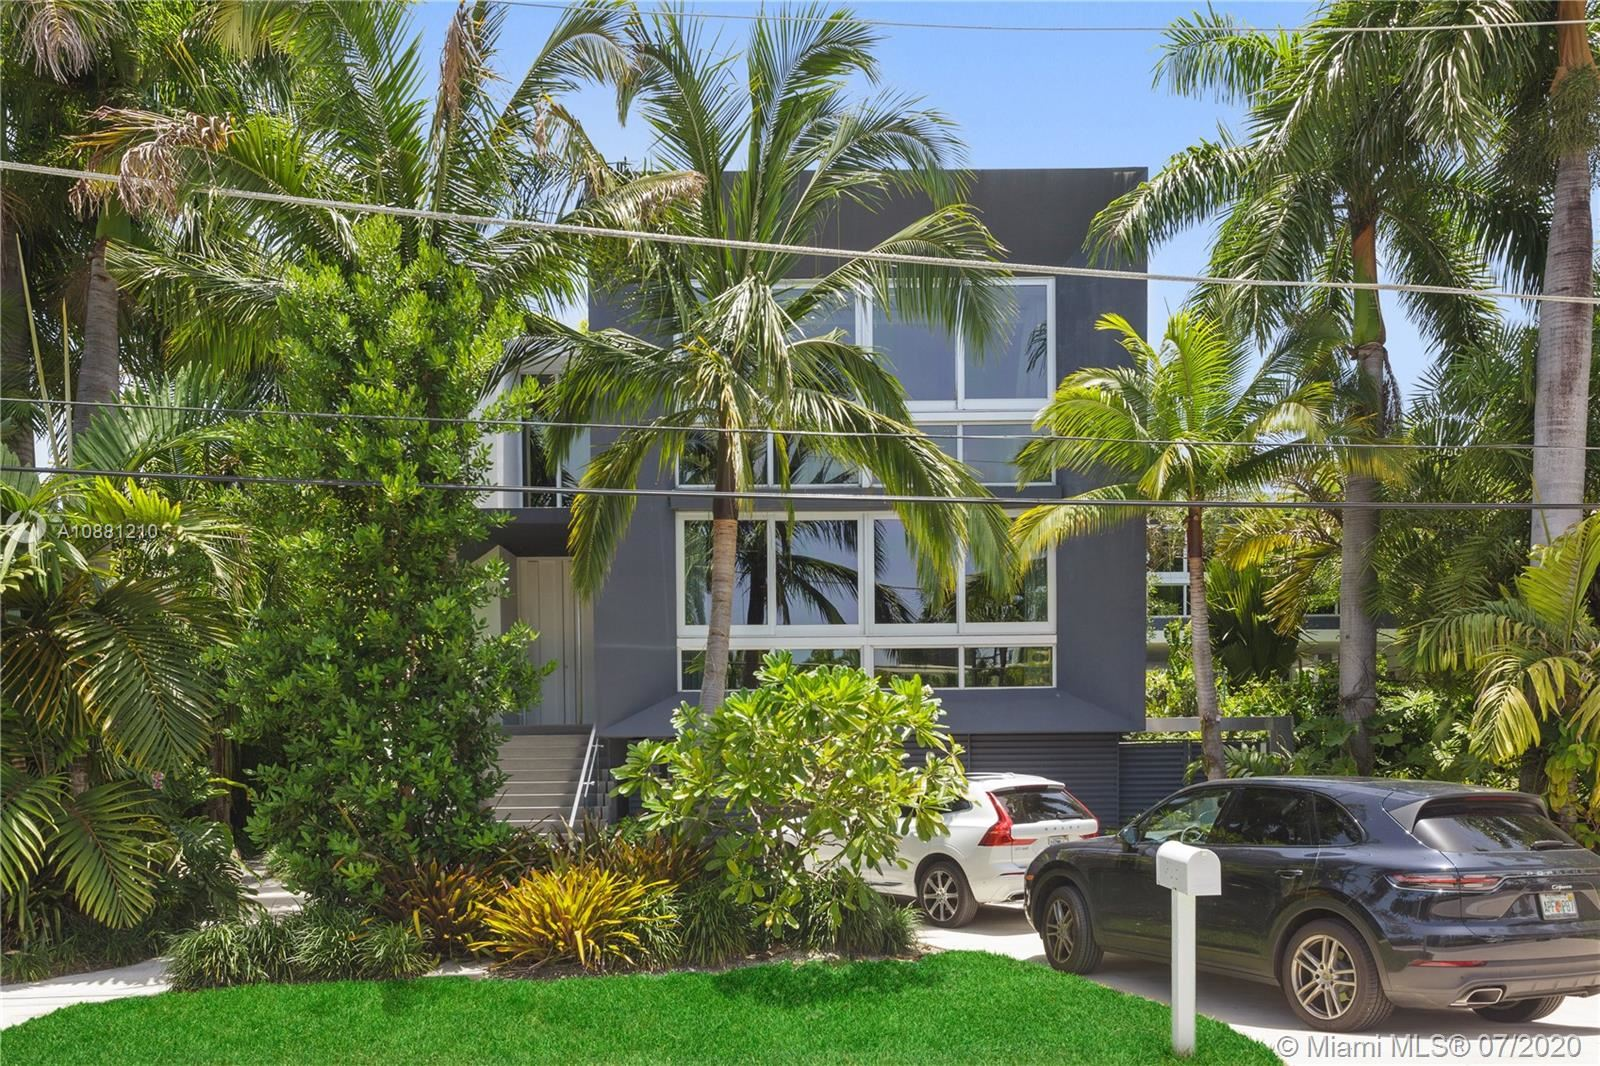 Photo 2 of Listing MLS a10881210 in 370 S Hibiscus Dr Miami Beach FL 33139